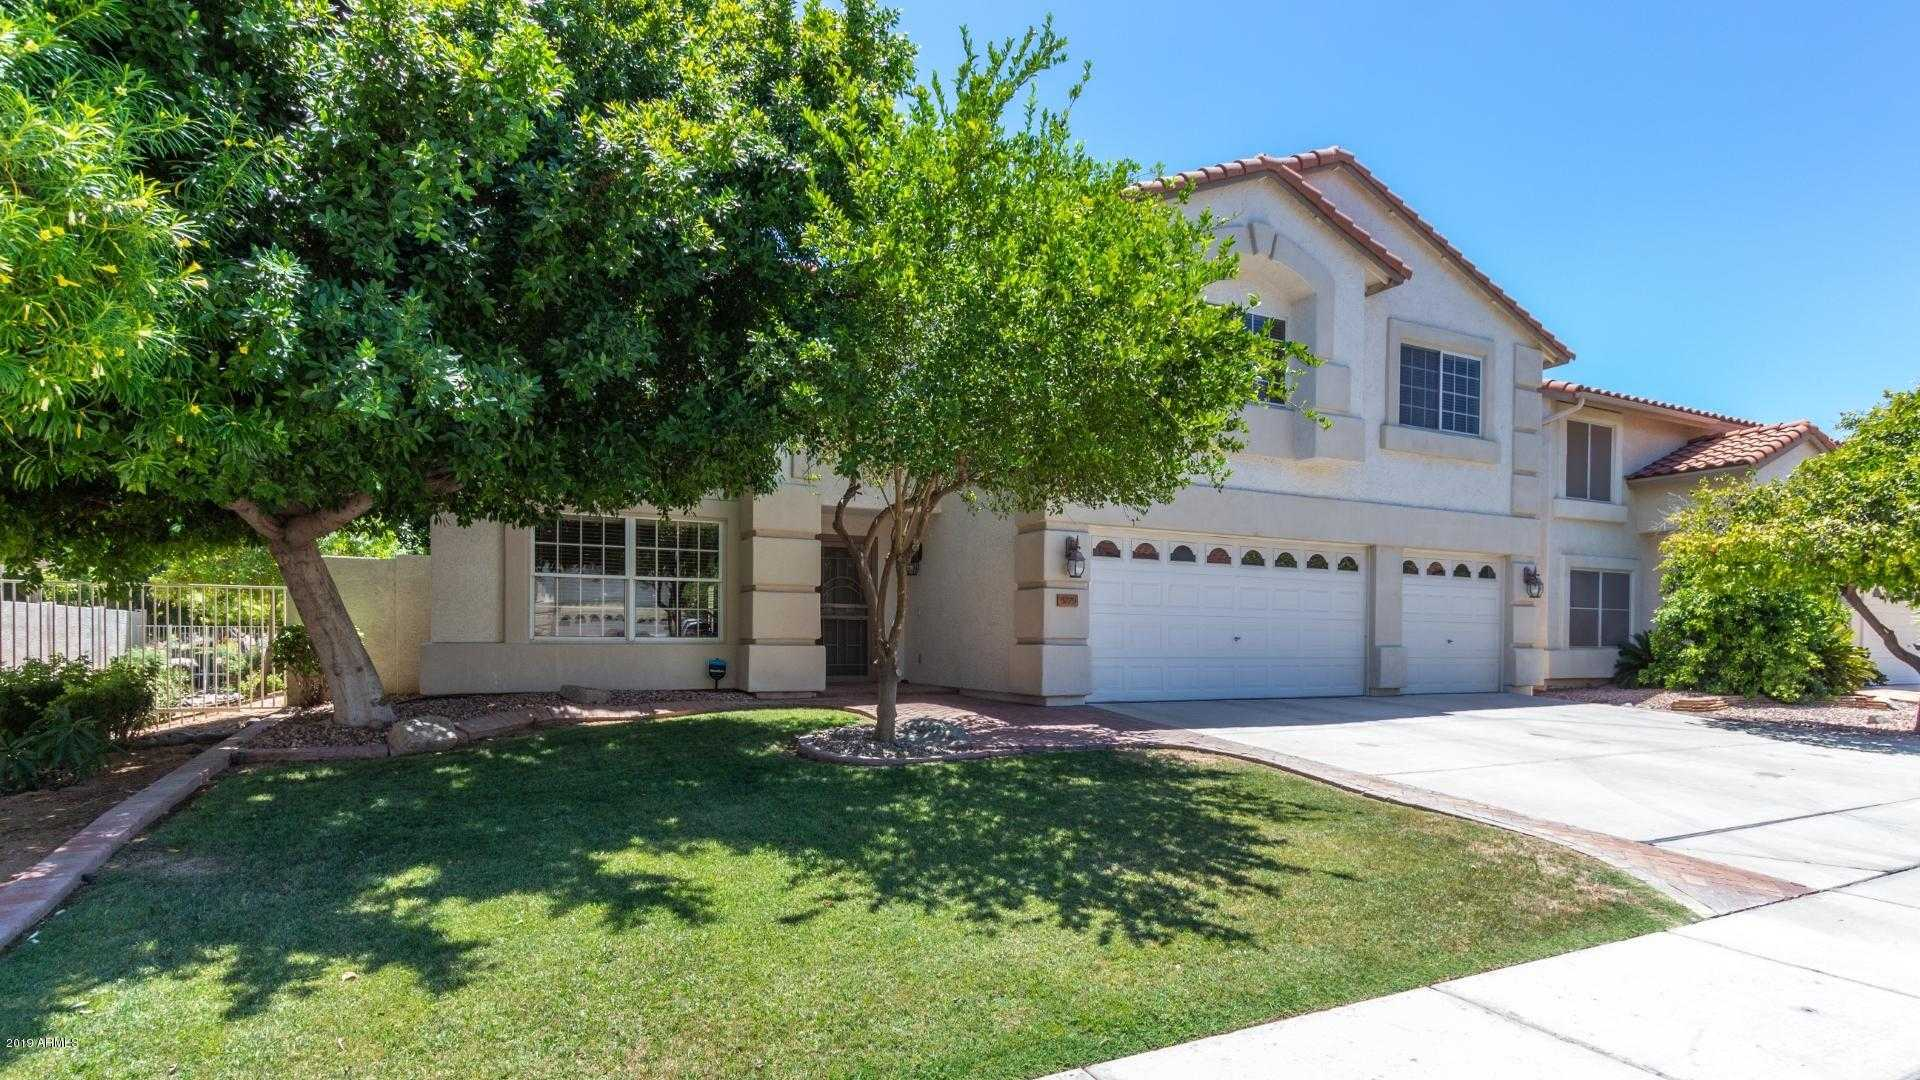 $398,000 - 5Br/3Ba - Home for Sale in Mission Groves 4 & 5, Glendale